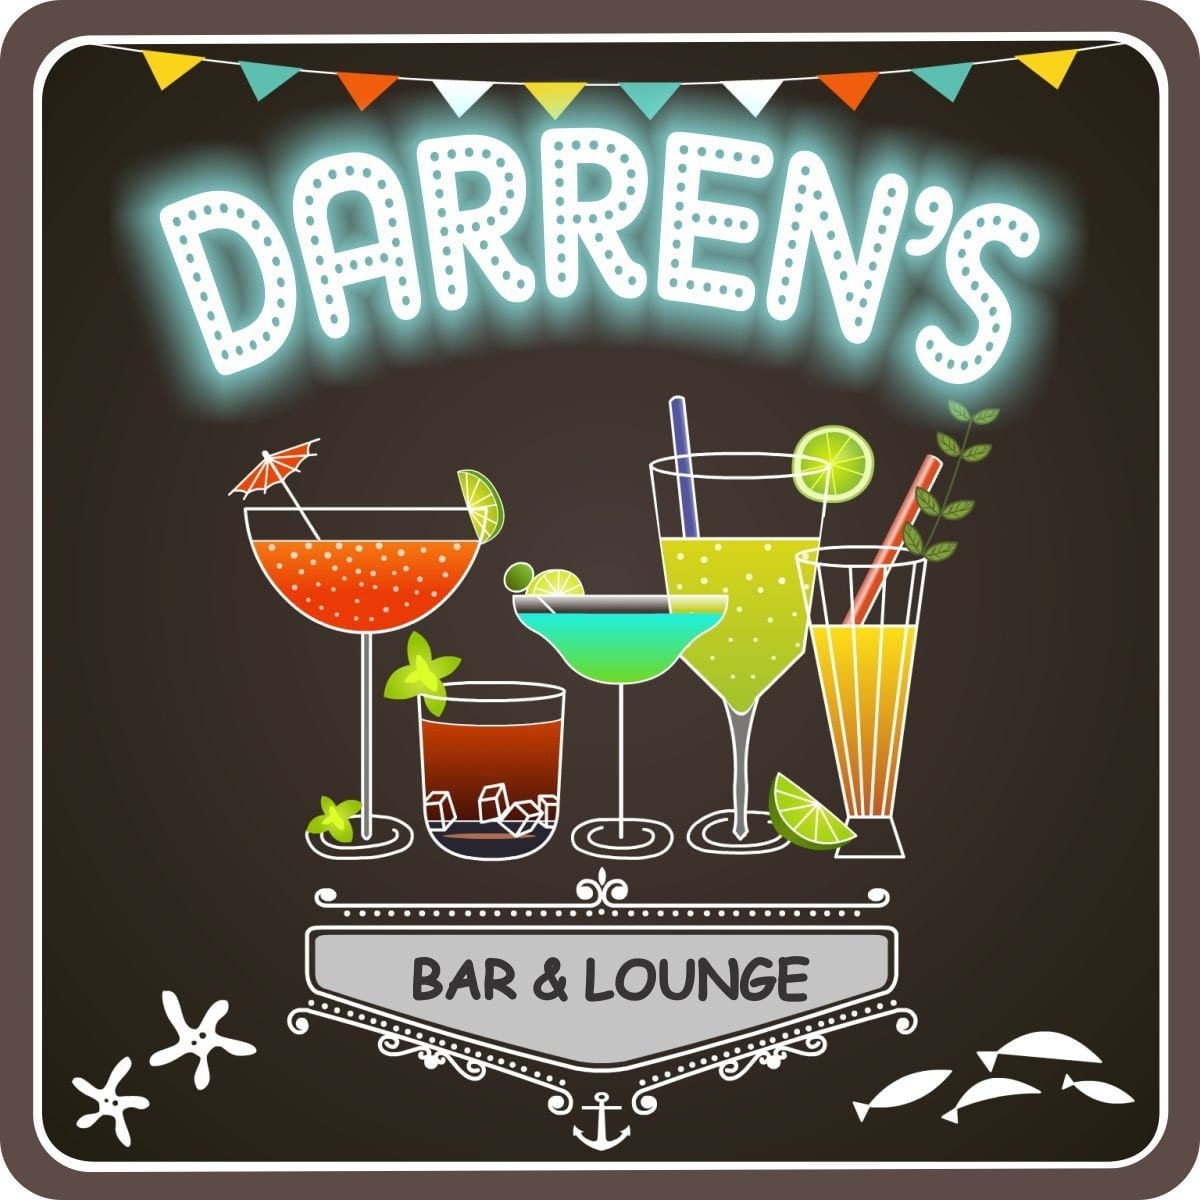 Neon Lights Personalized Bar Sign in Black with Stylized